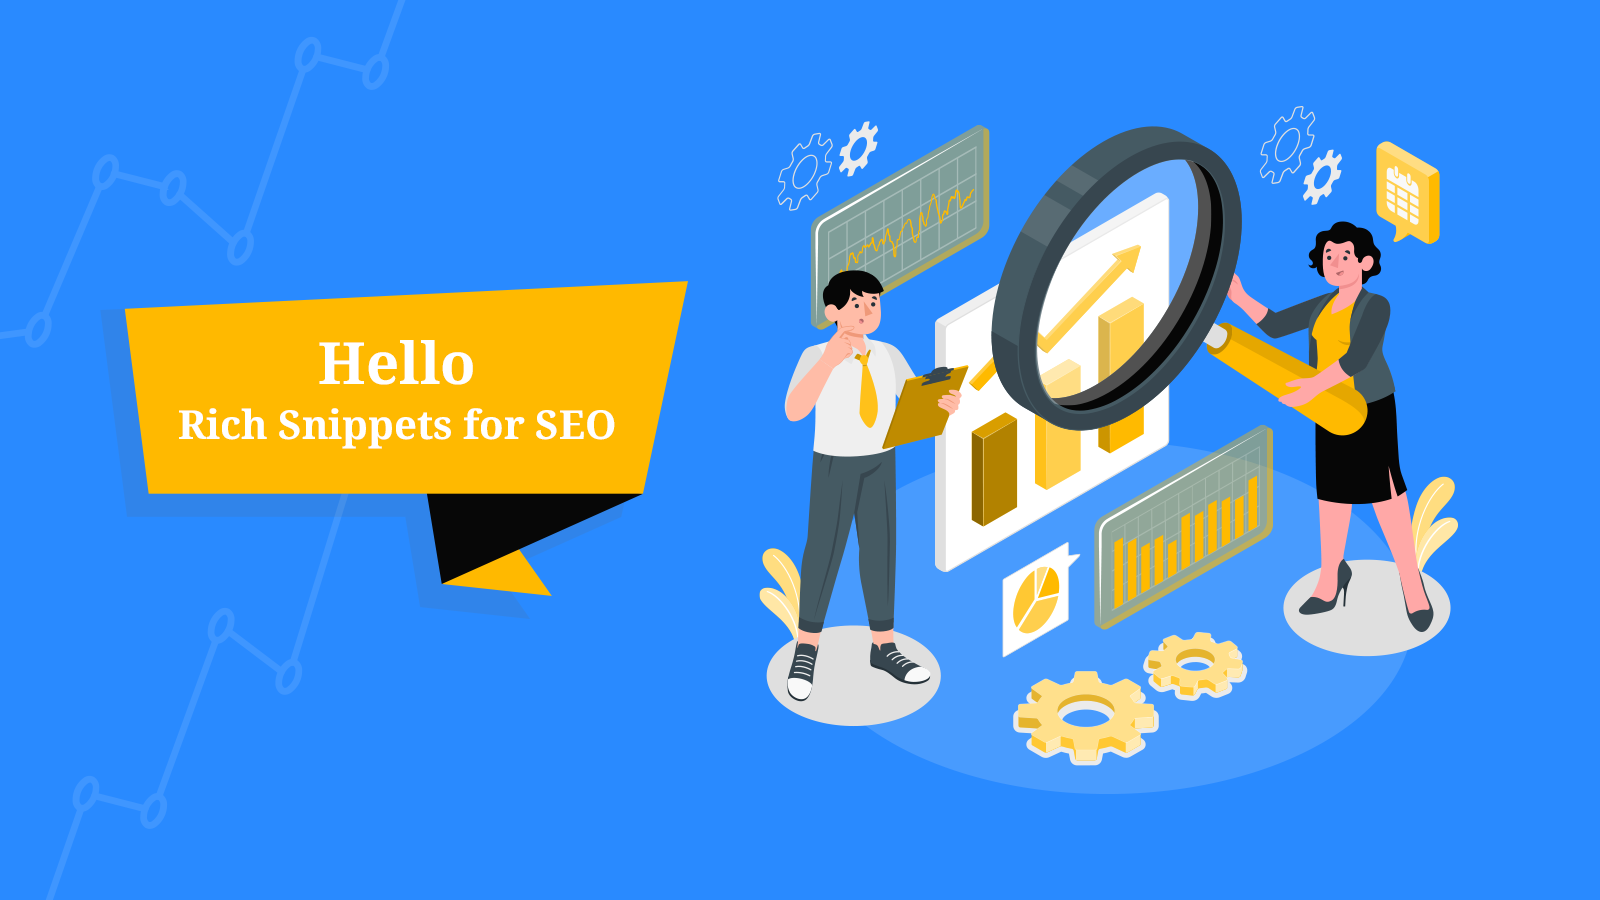 Hello Rich Snippets for SEO